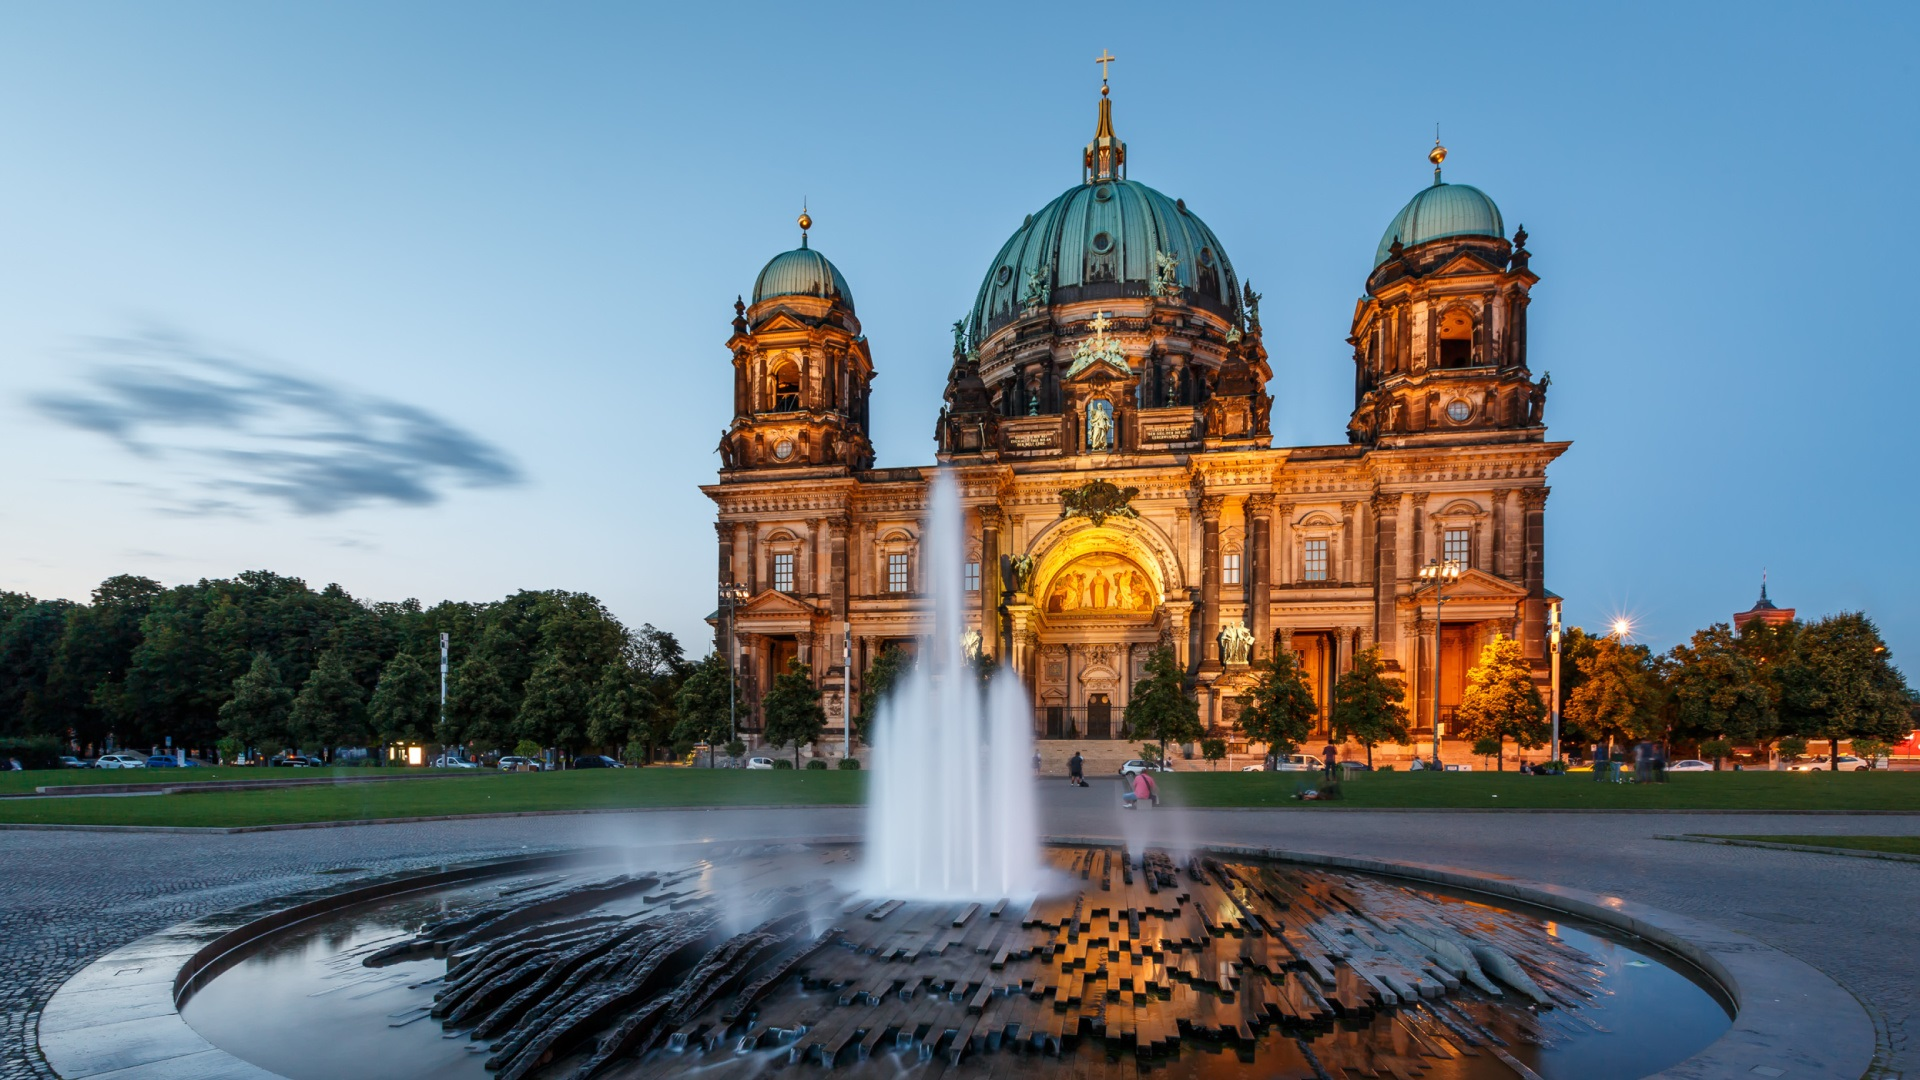 wallpaper berlin cathedral architecture germany night fountain